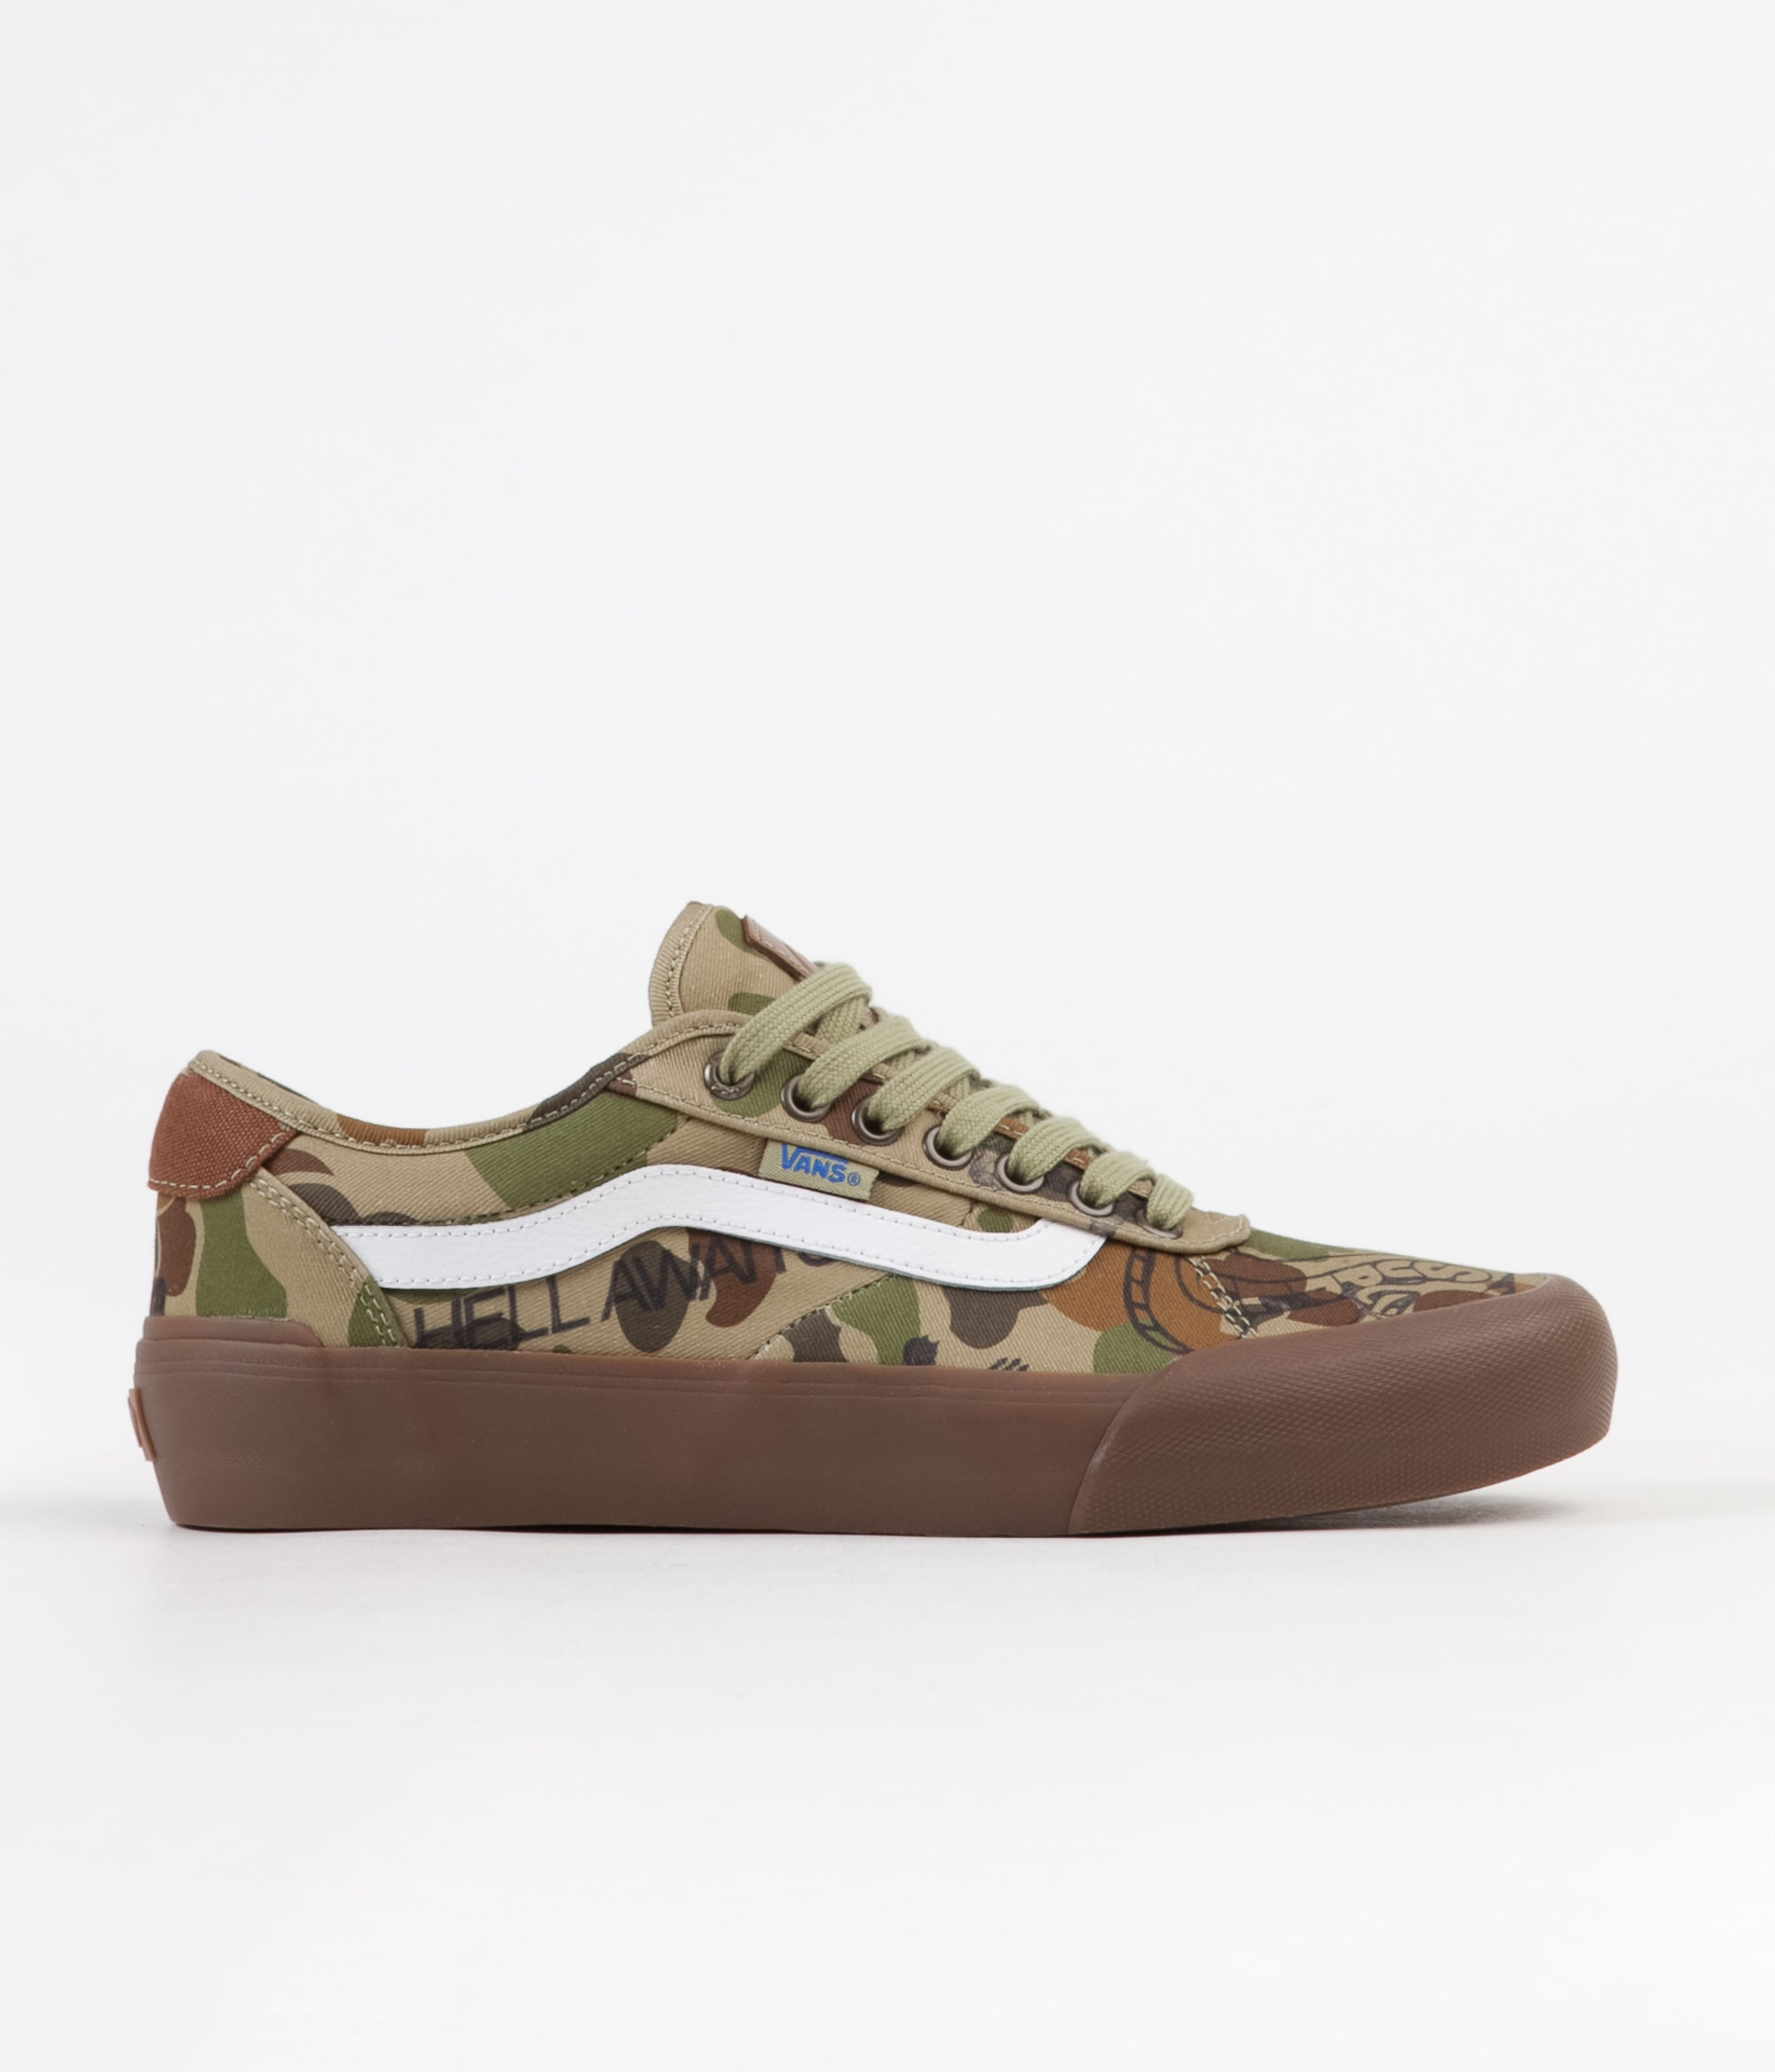 Vans x Supply Chima Pro 2 LTD Shoes - Auscam